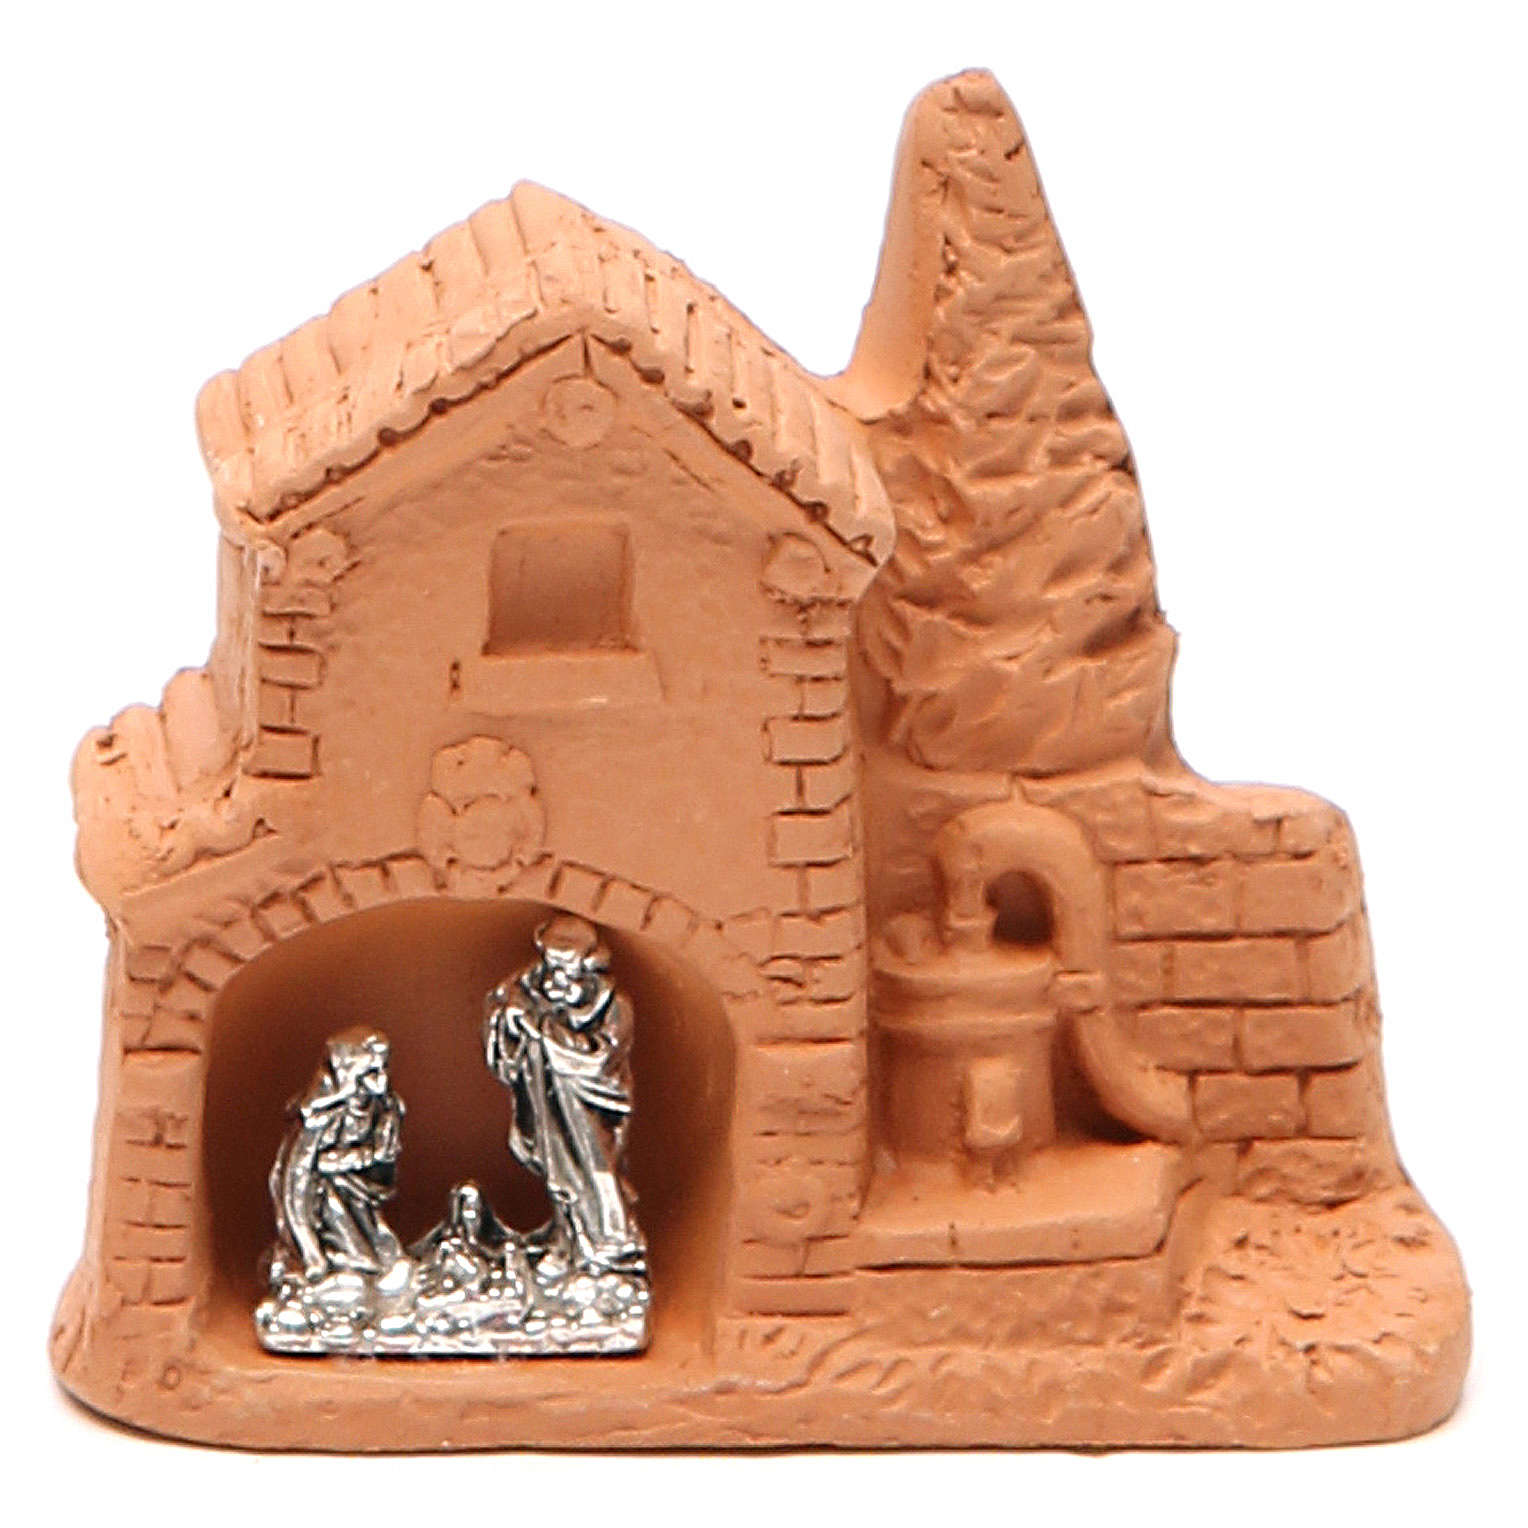 Shack and miniature Nativity natural terracotta 6x7x3cm 4